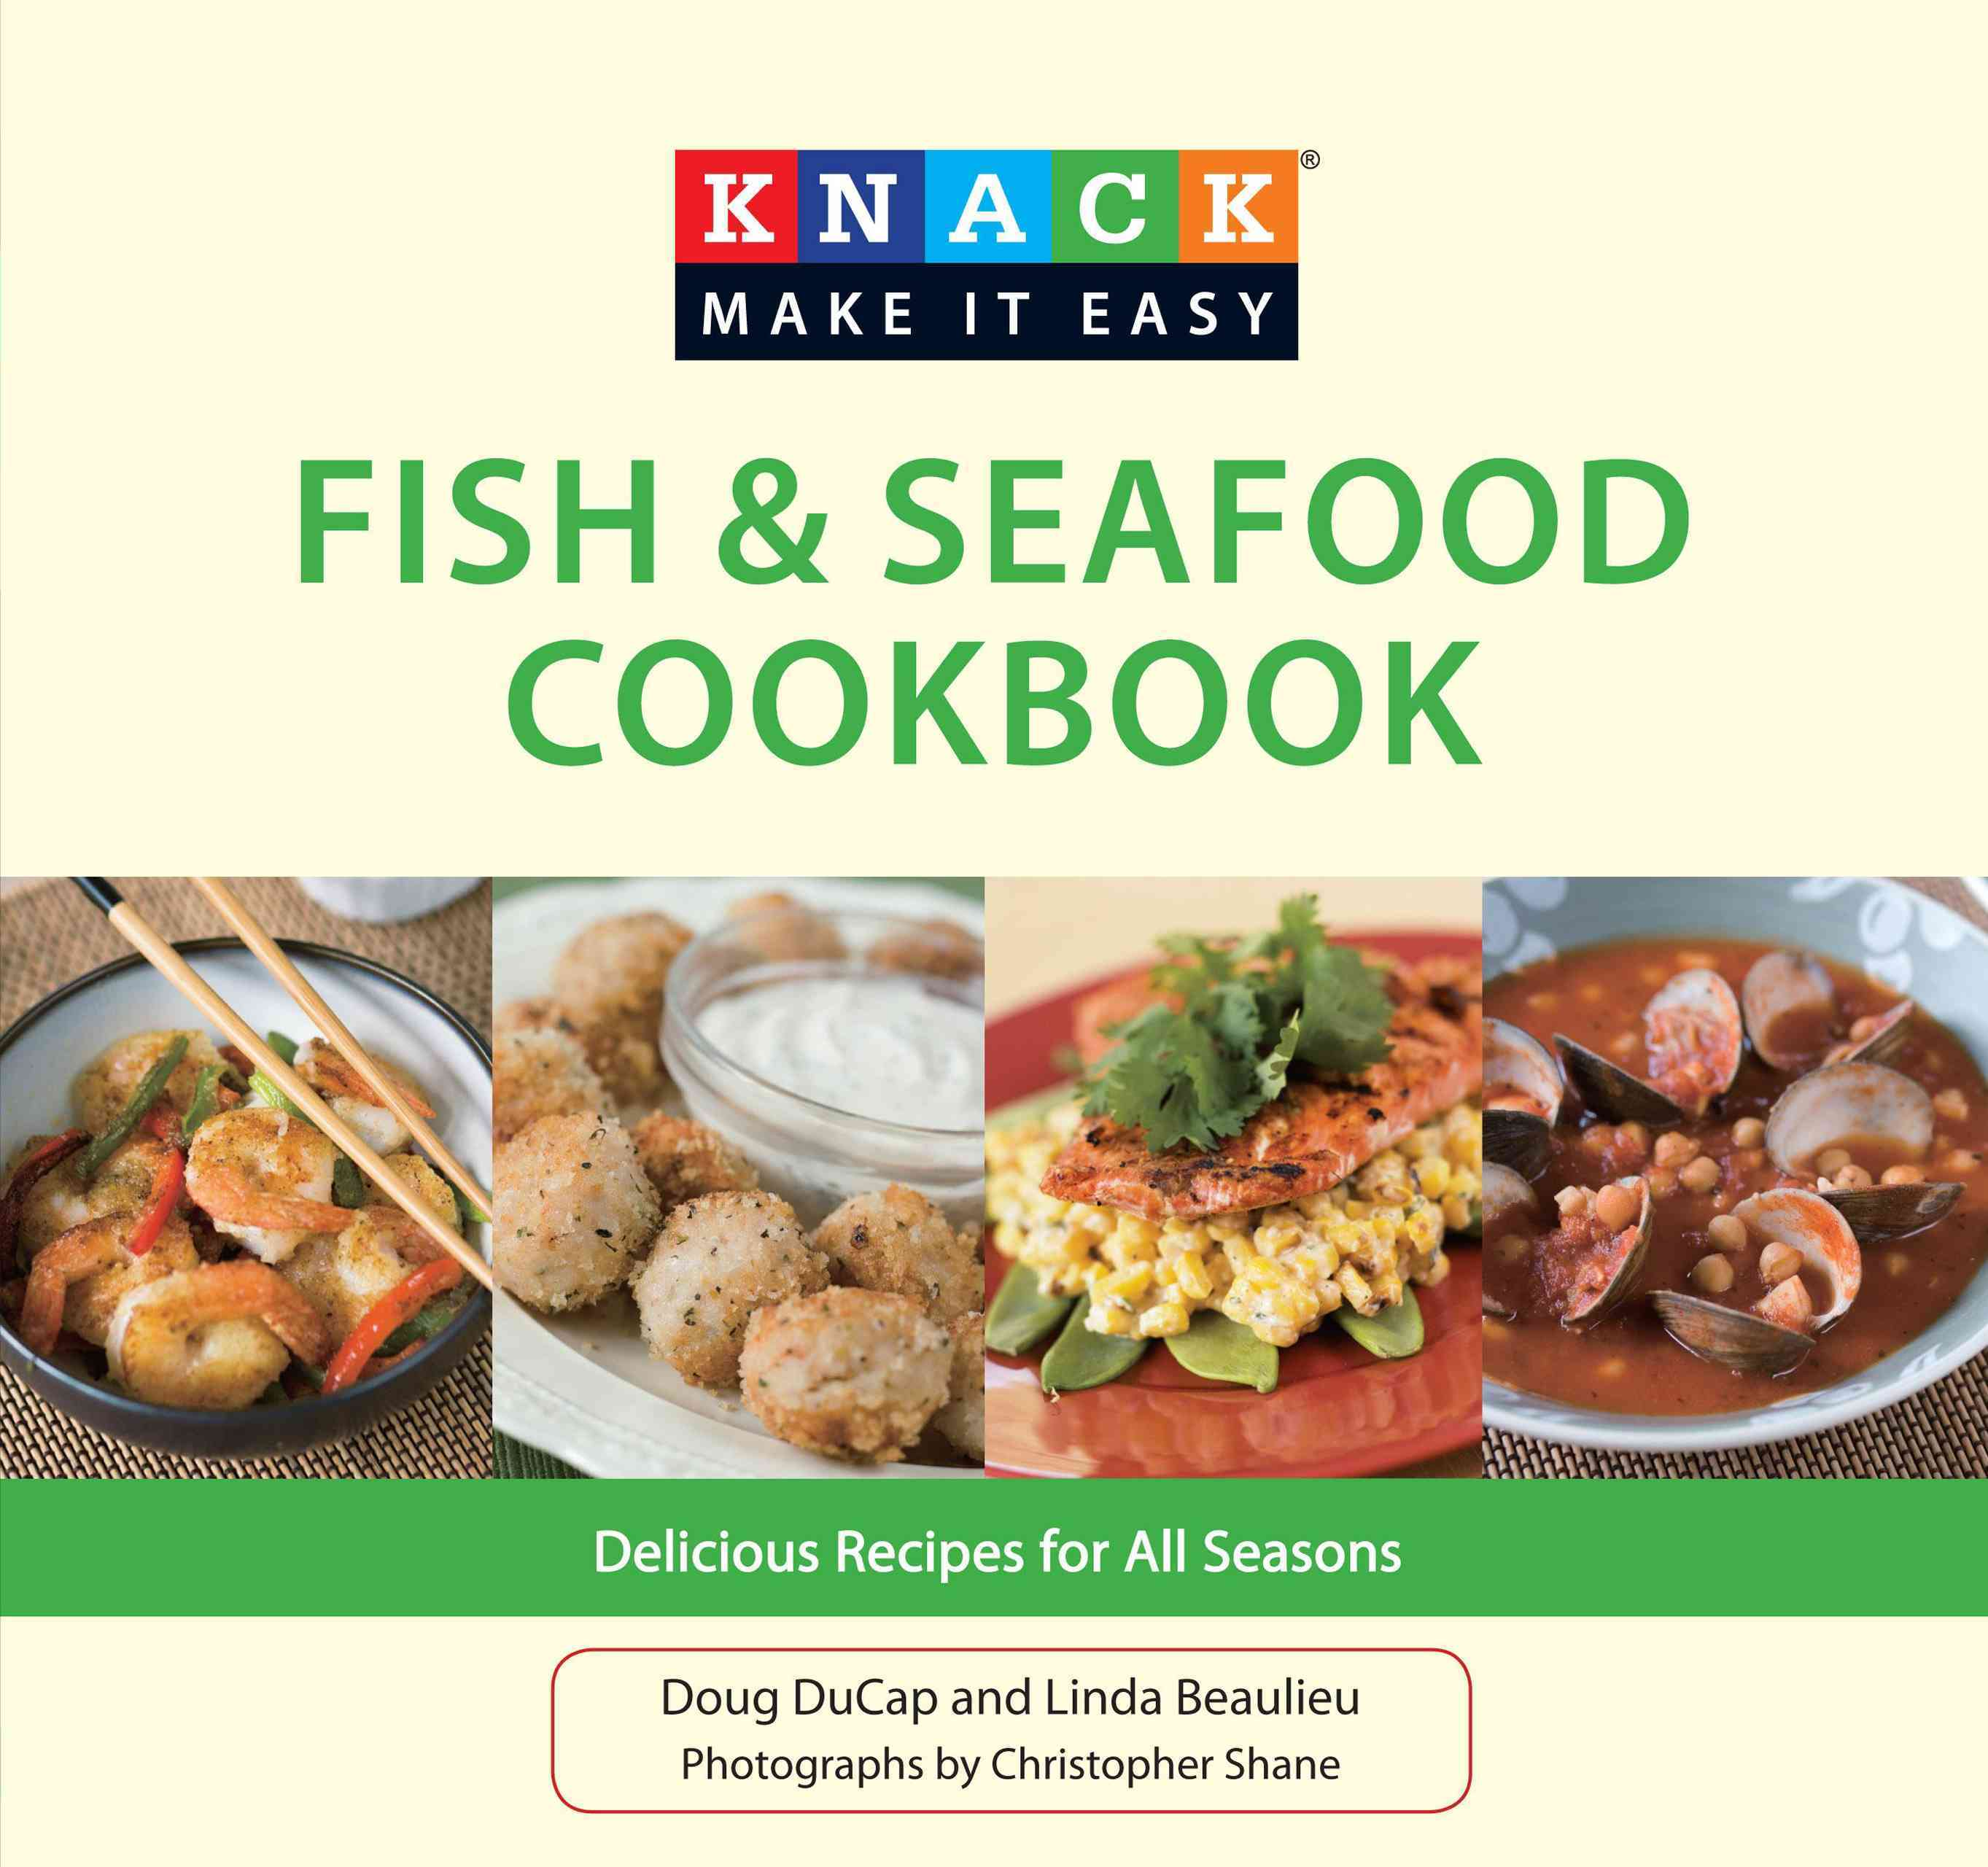 Knack Fish & Seafood Cookbook: Delicious Recipes for All Seasons (Paperback)